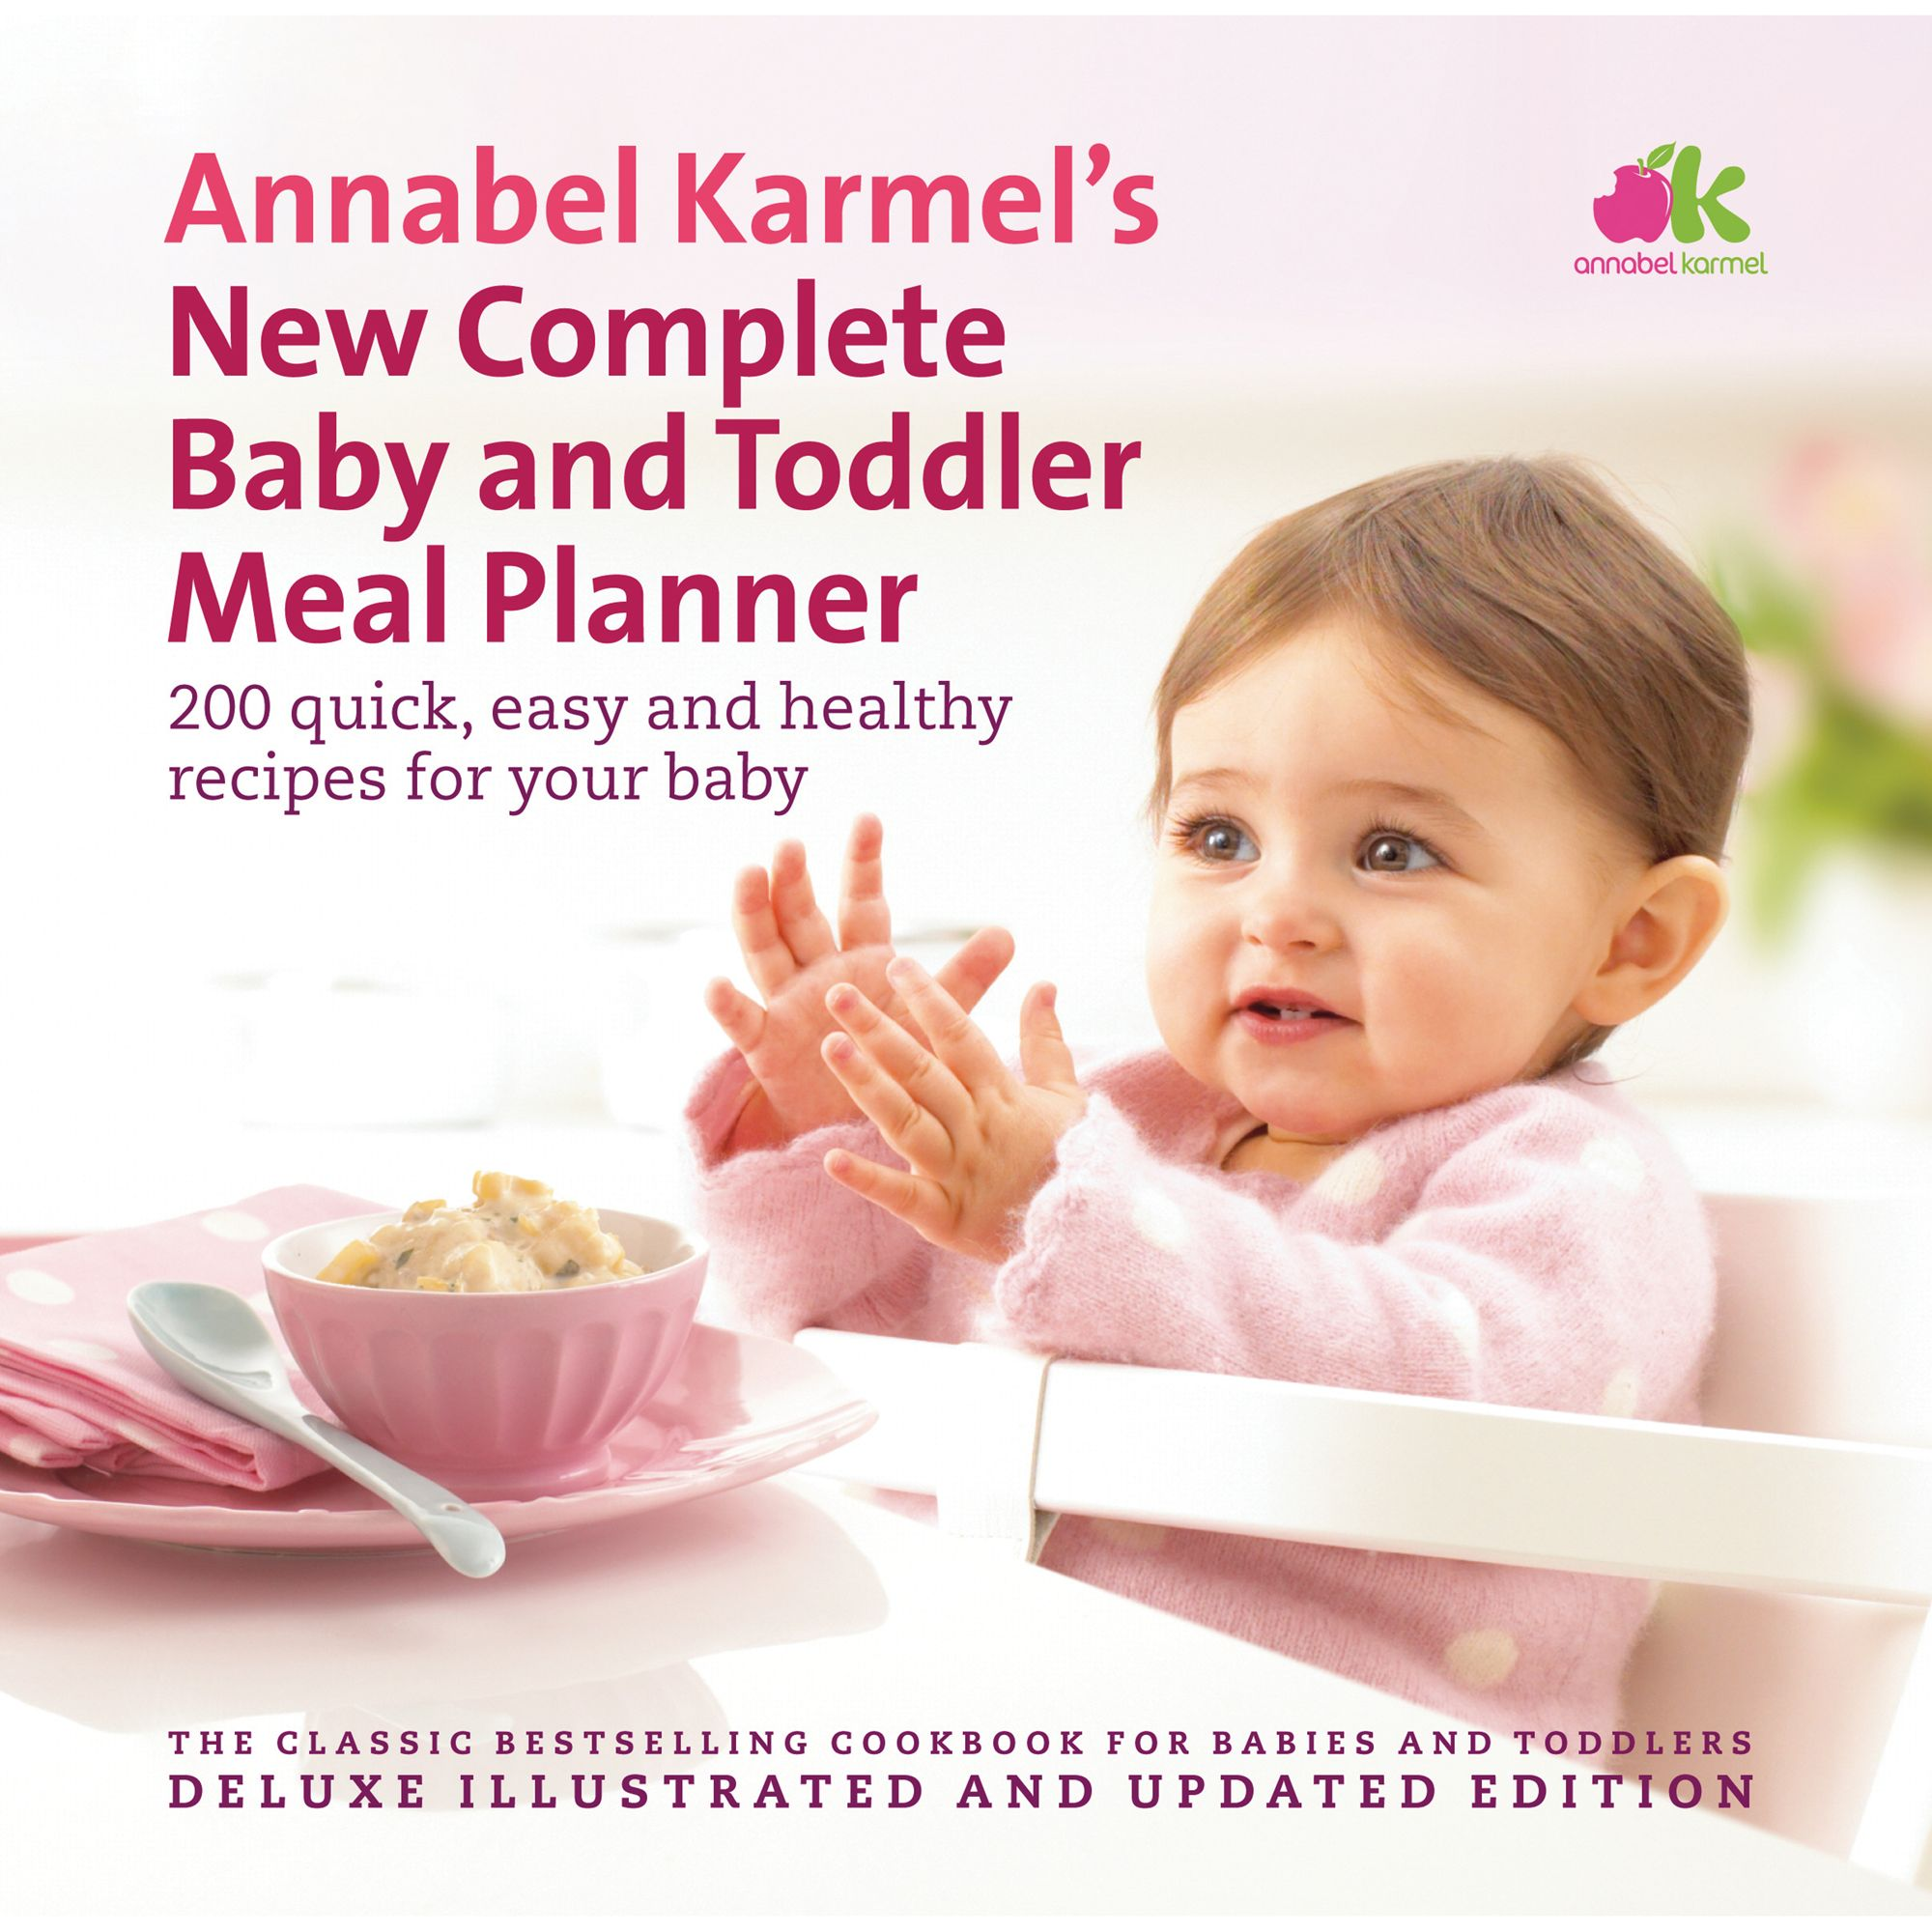 Annabel Karmel by NUK Annabel Karmel's New Complete Baby and Toddler Meal Planner